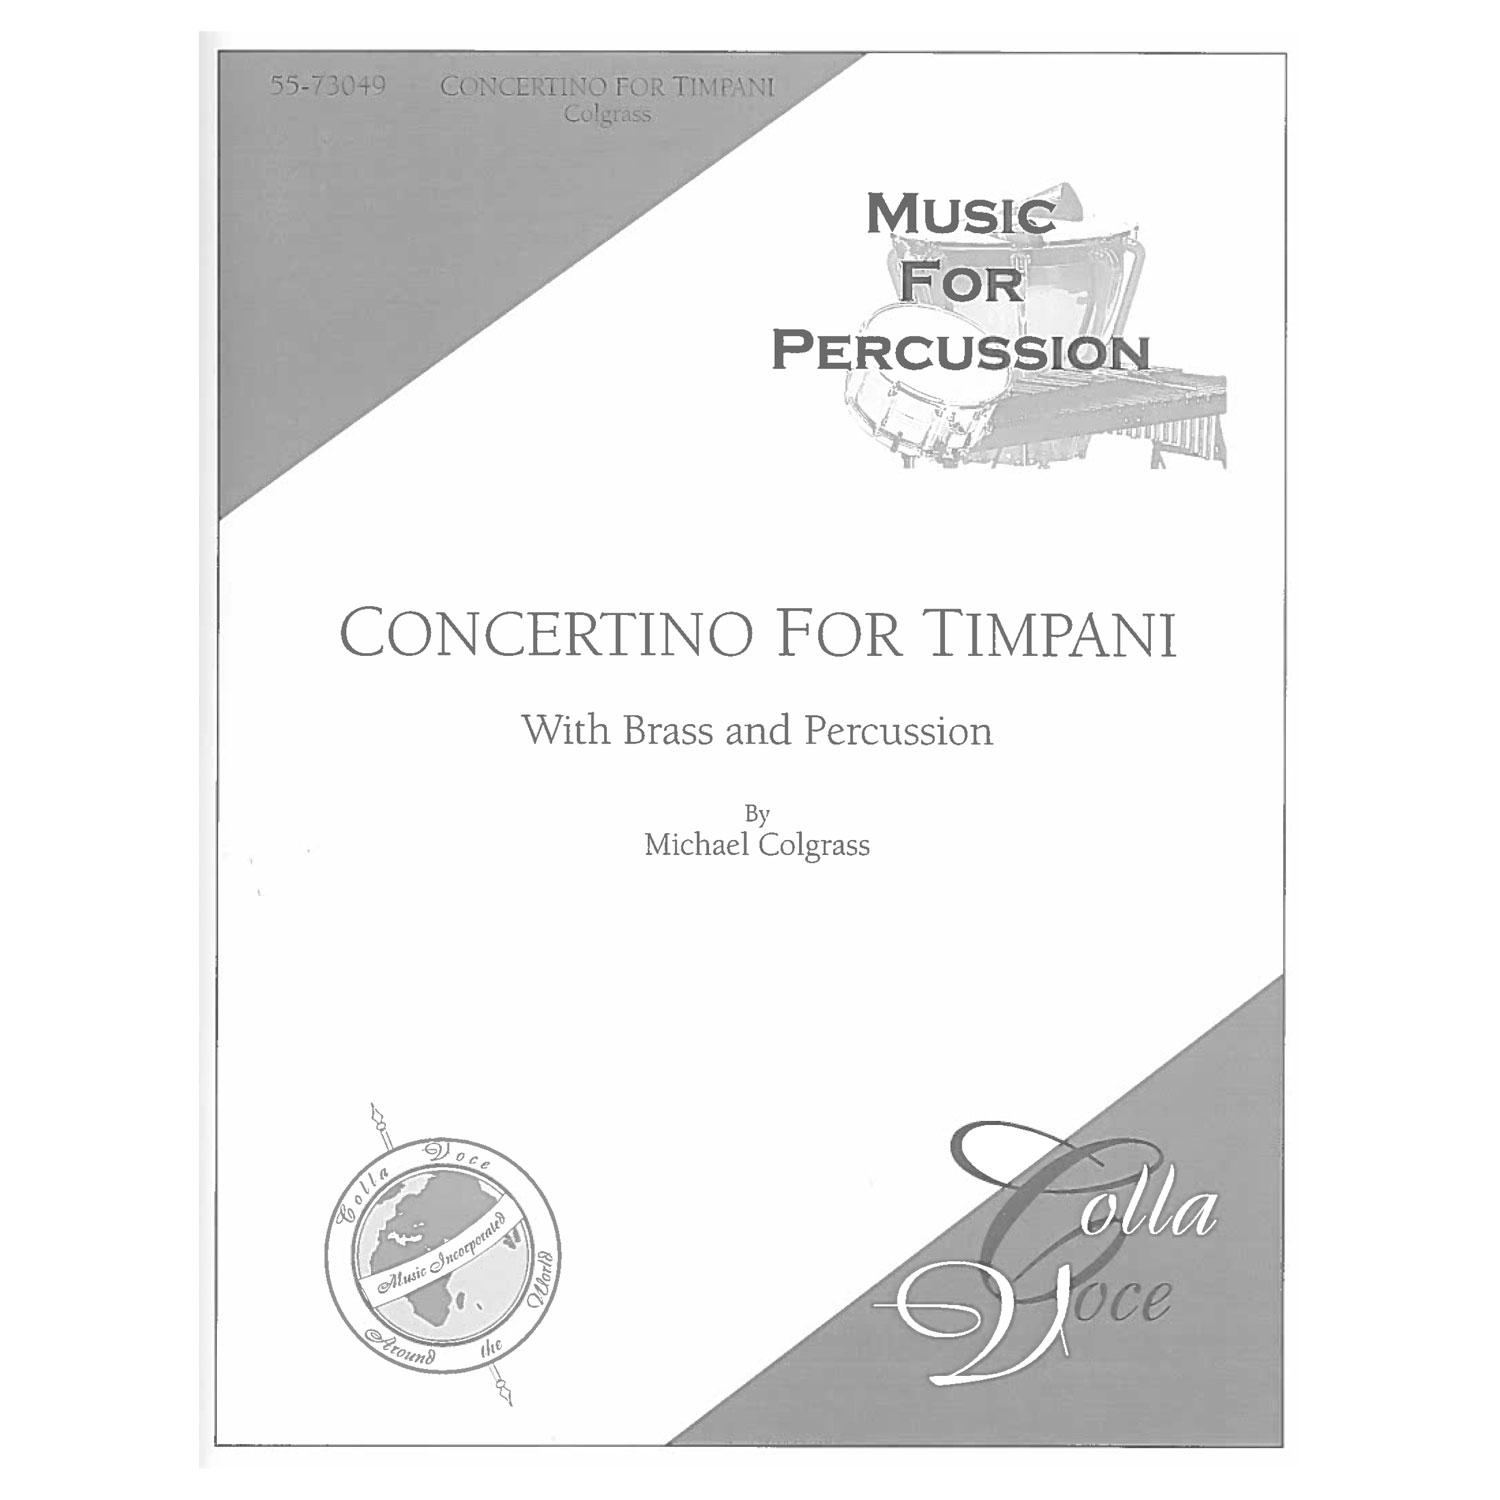 Concertino for Timpani by Michael Colgrass